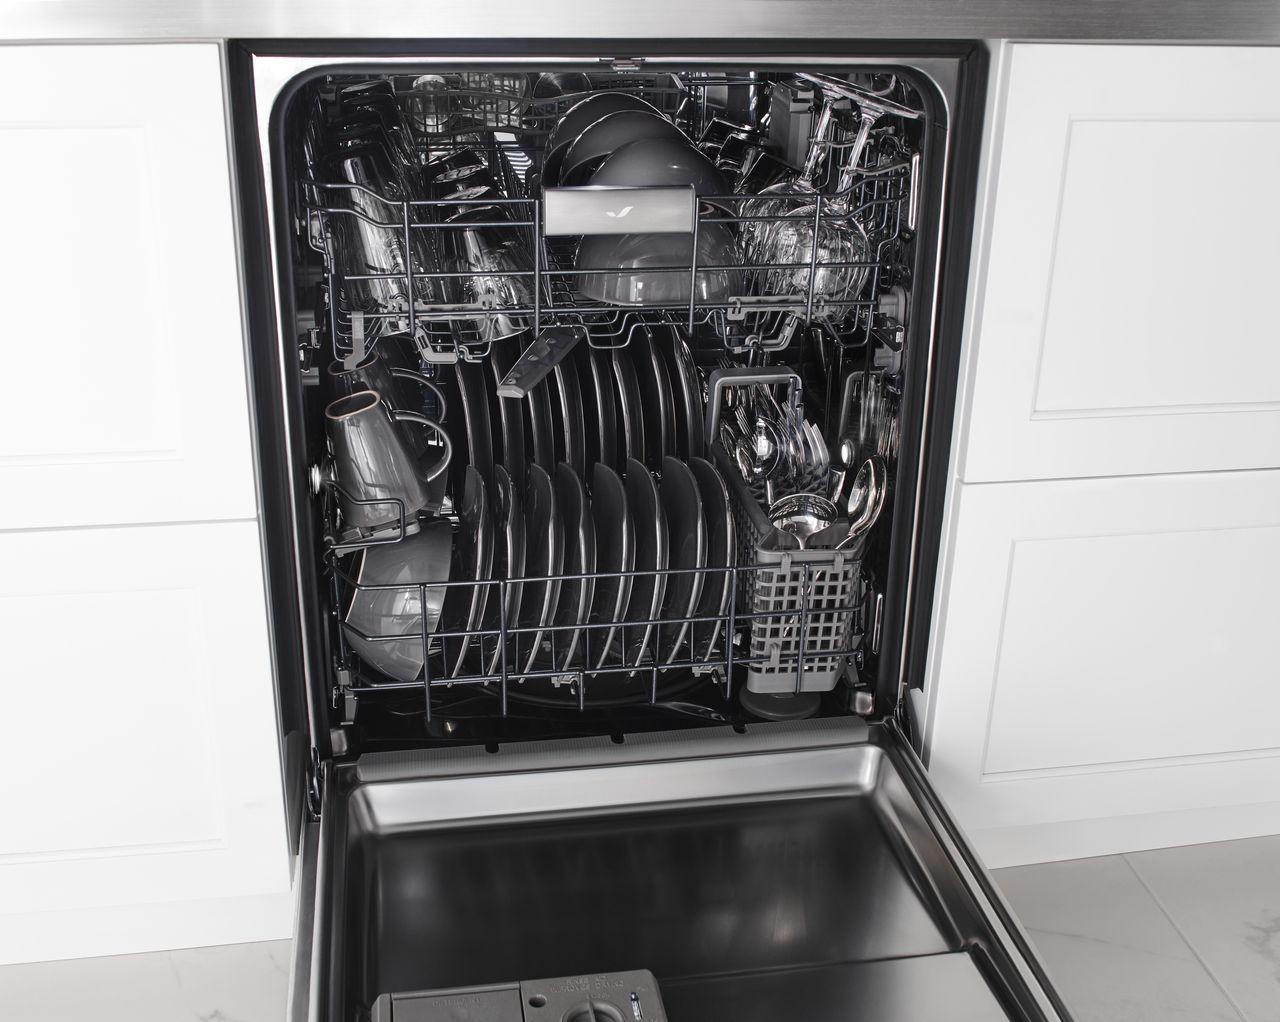 Jdb9200cws Jenn Air 24 Quot Trifecta Wash Dishwasher